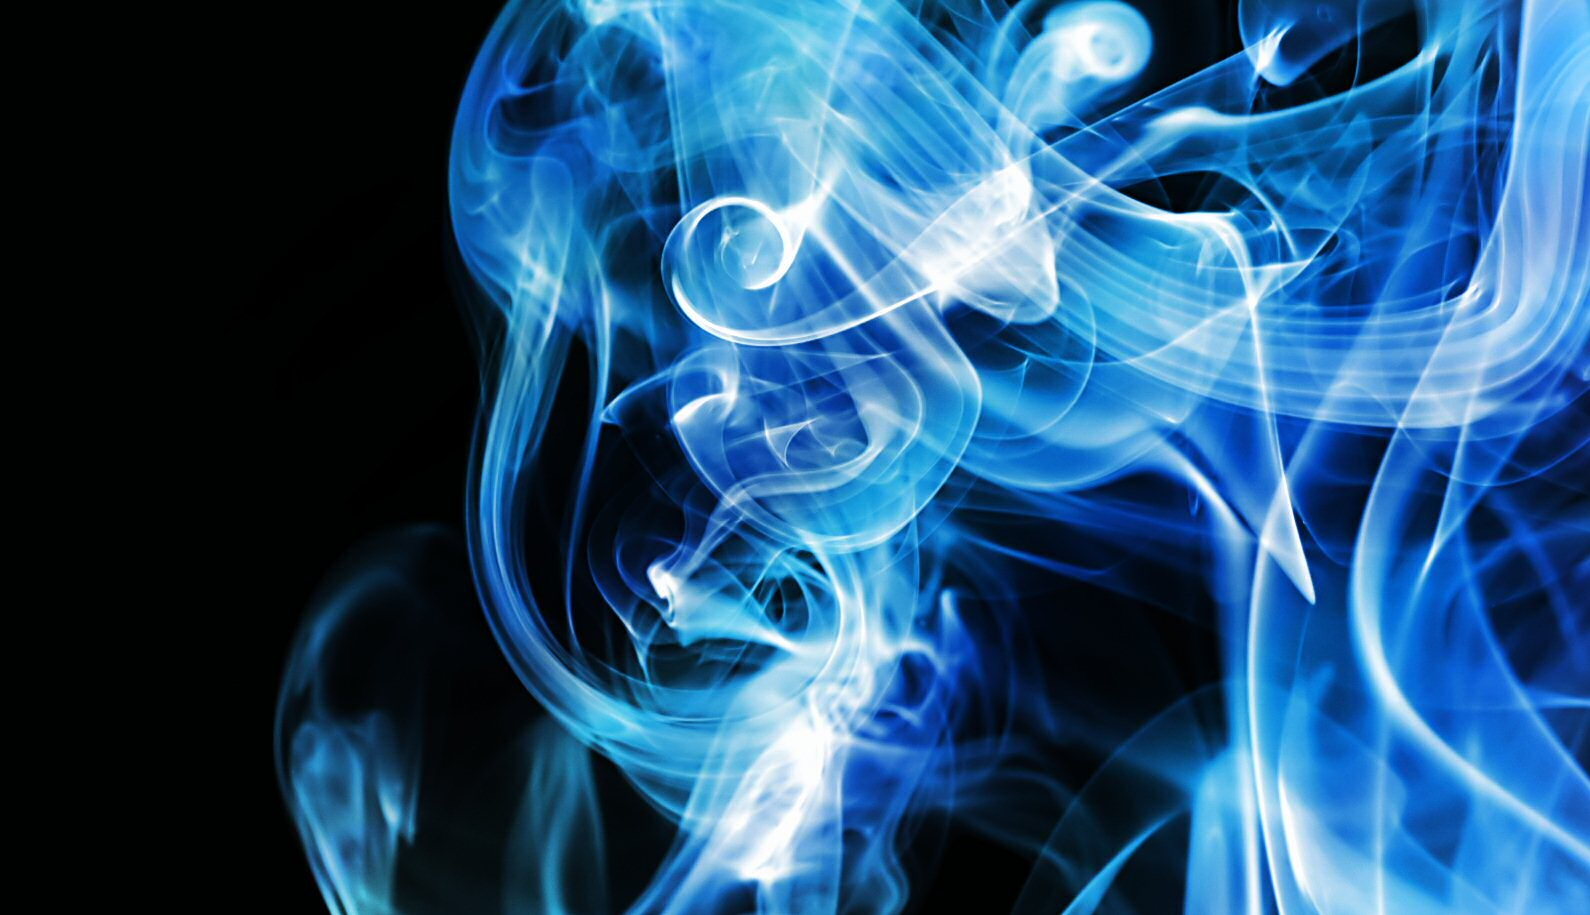 Blue Smoke Wallpaper 1590x915